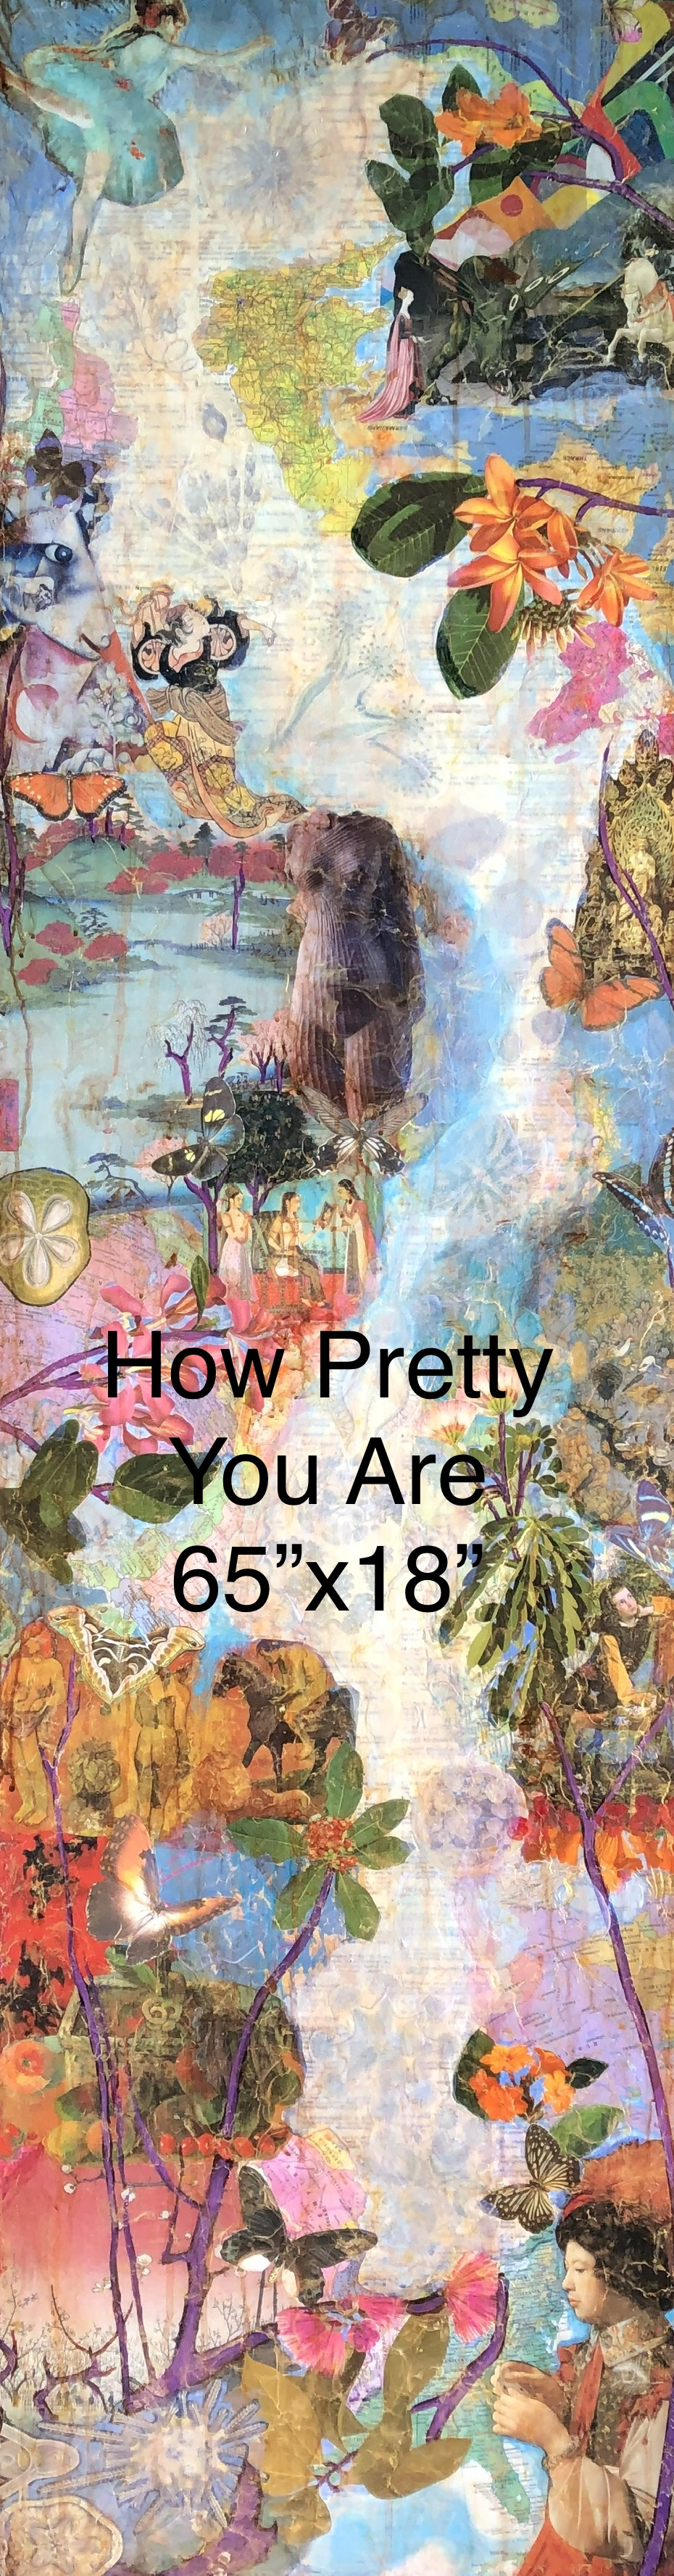 How Pretty You Are 65x18